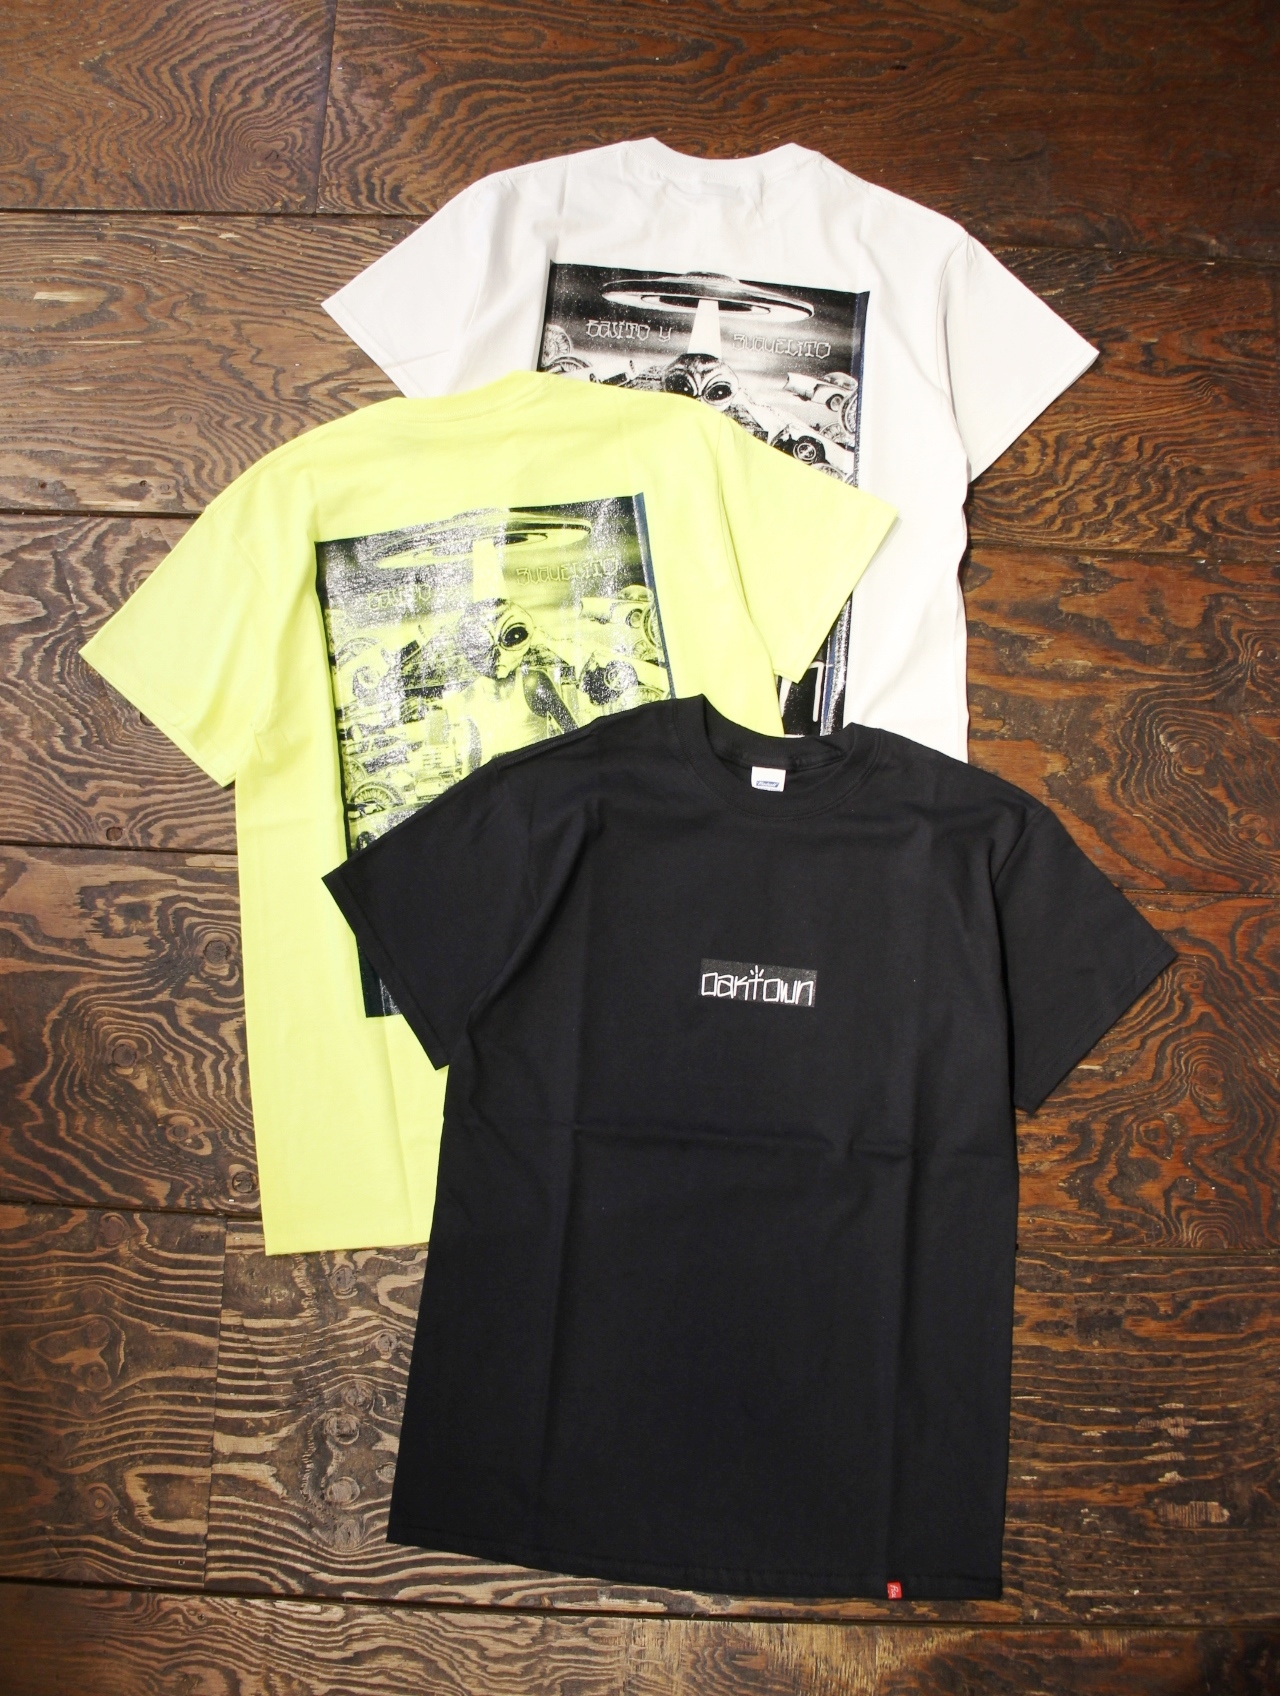 RADIALL    「LOWRIDER PAUL - CREW NECK T-SHIRT S/S」 プリントティーシャツ